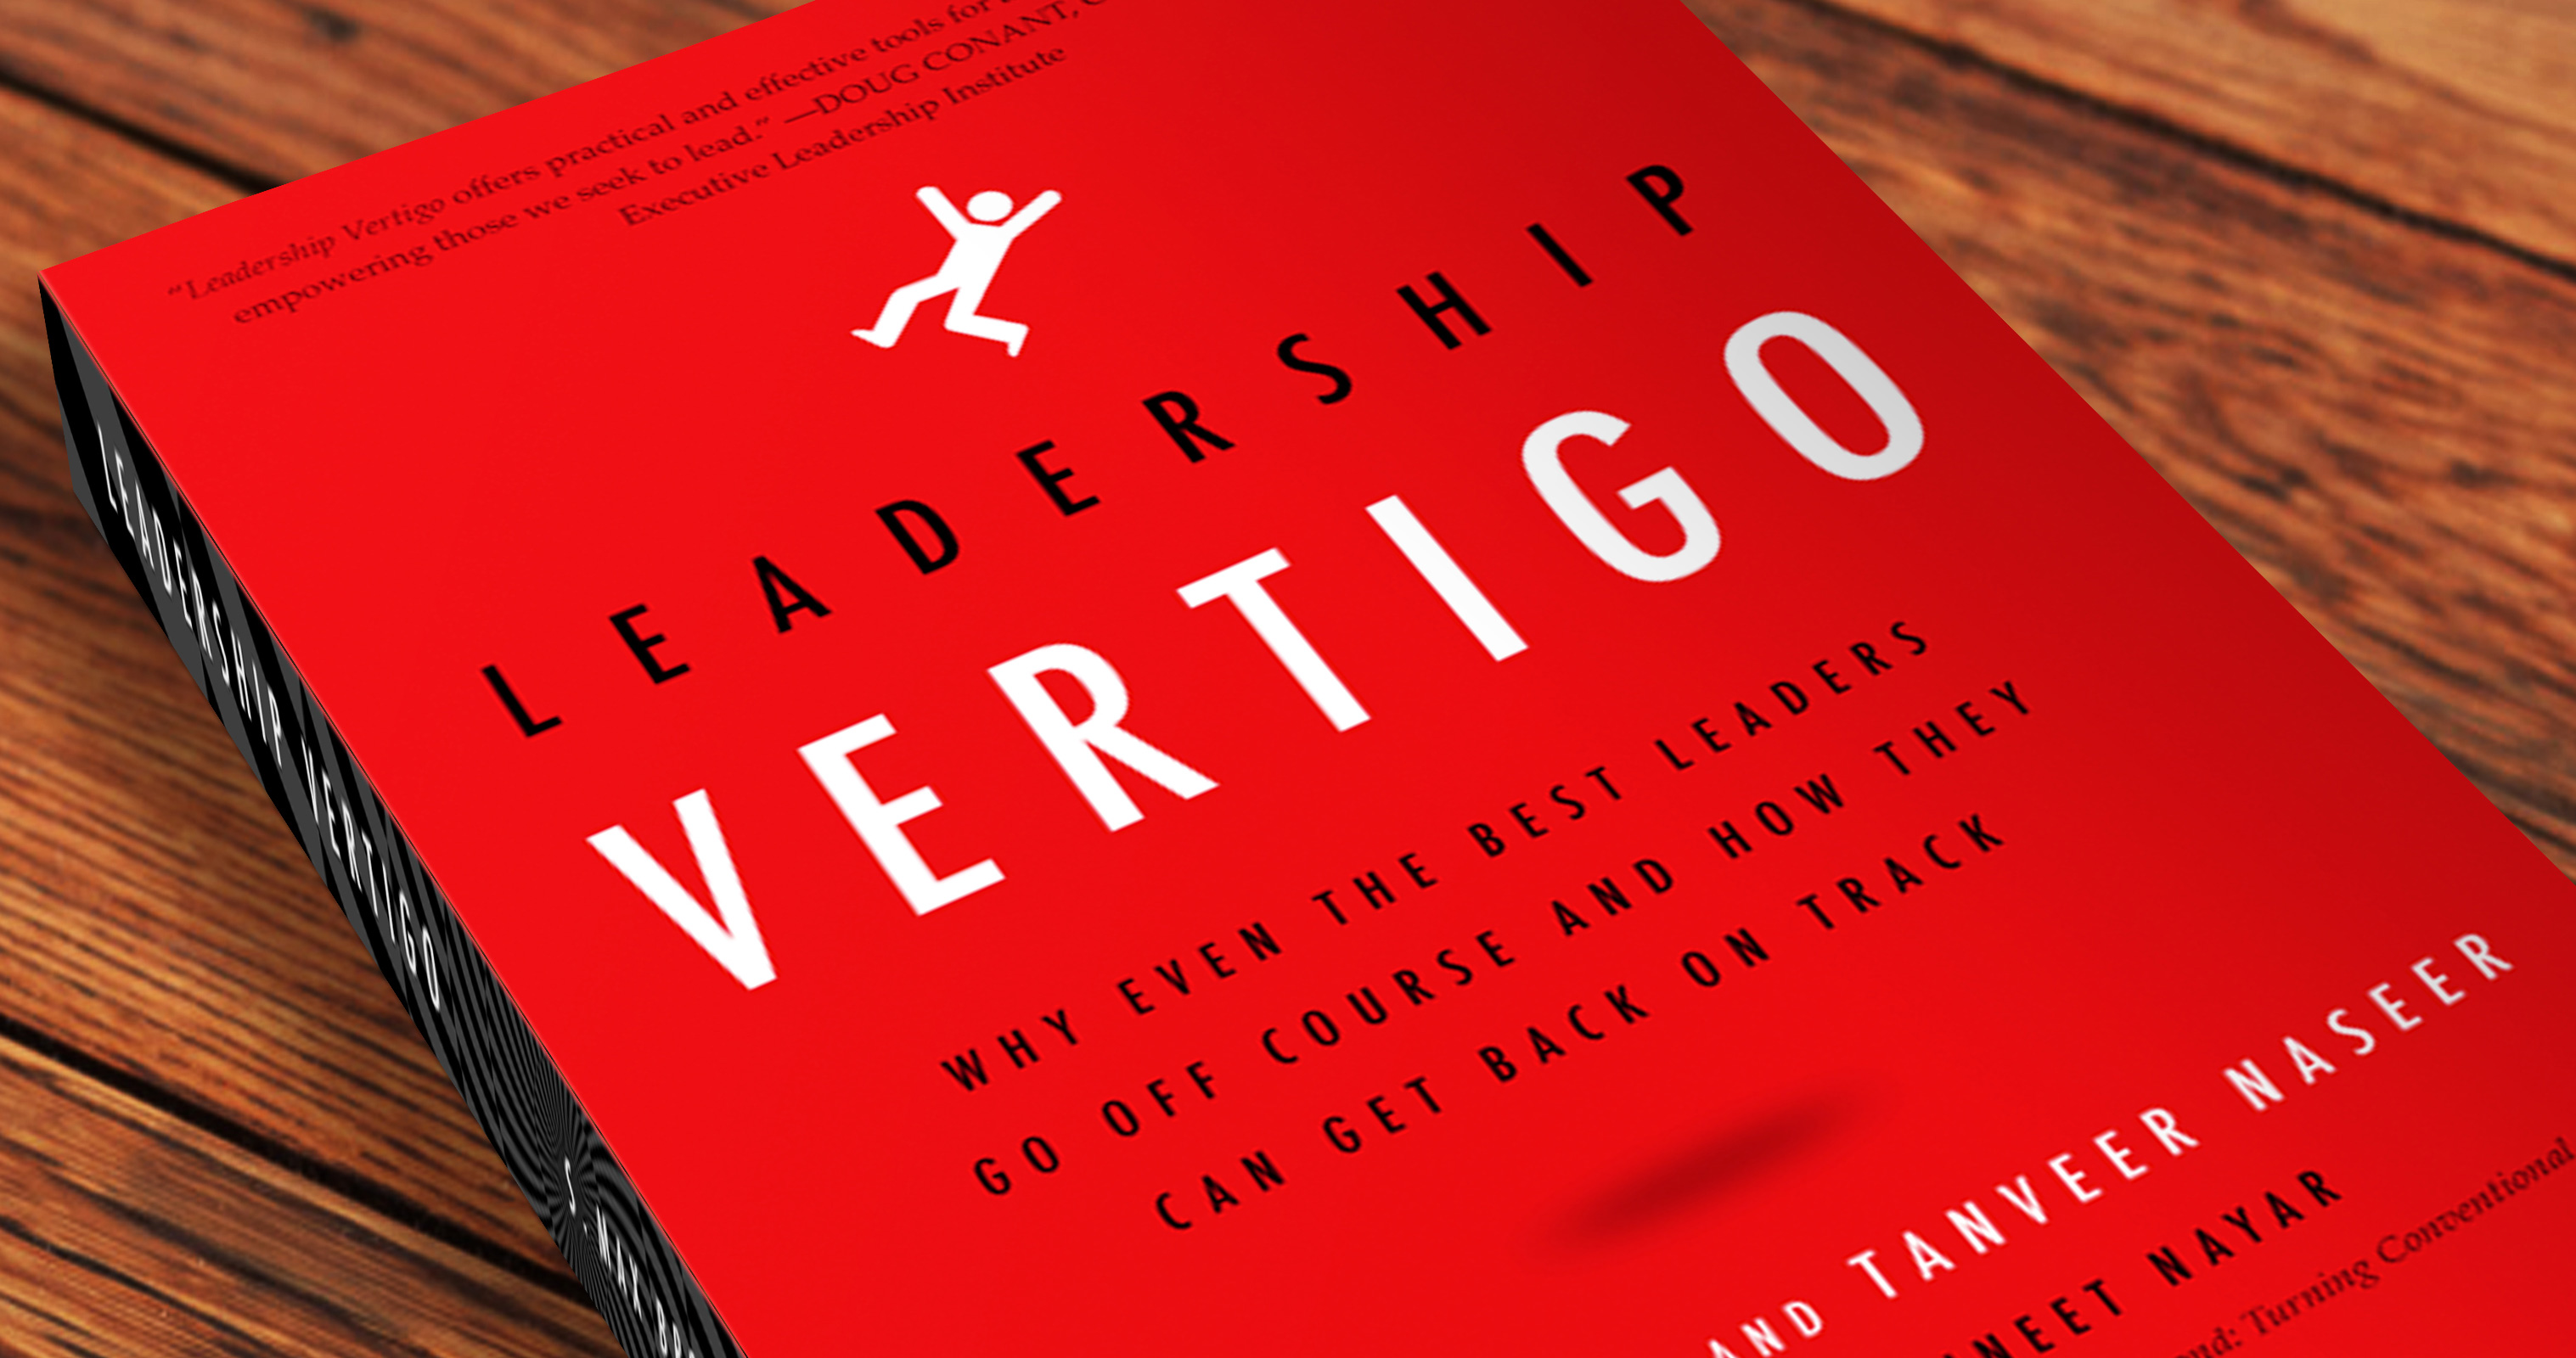 Leadership Vertigo book by Tanveer Naseer